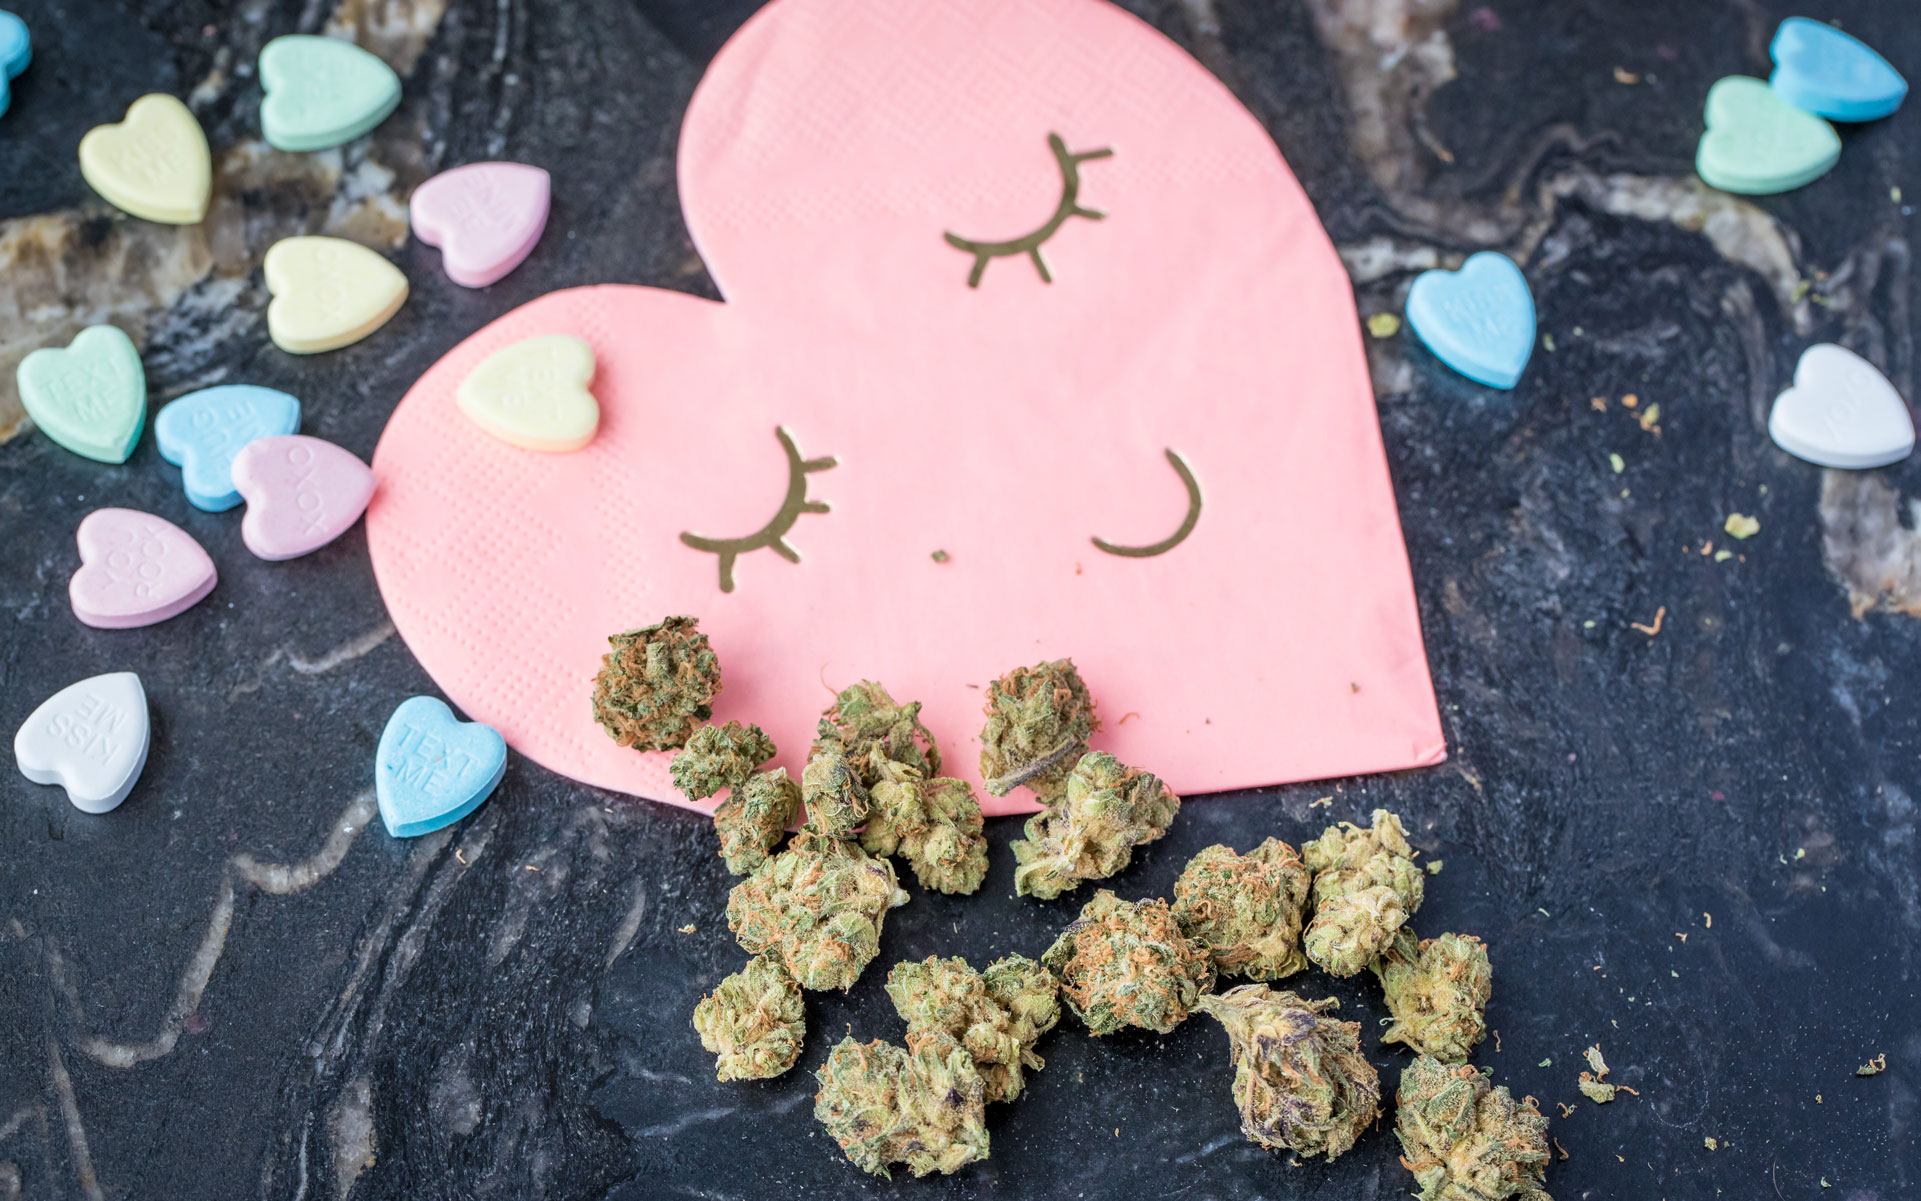 I Love You Cannabis: A Valentine's Day Playlist from Leafly thumbnail